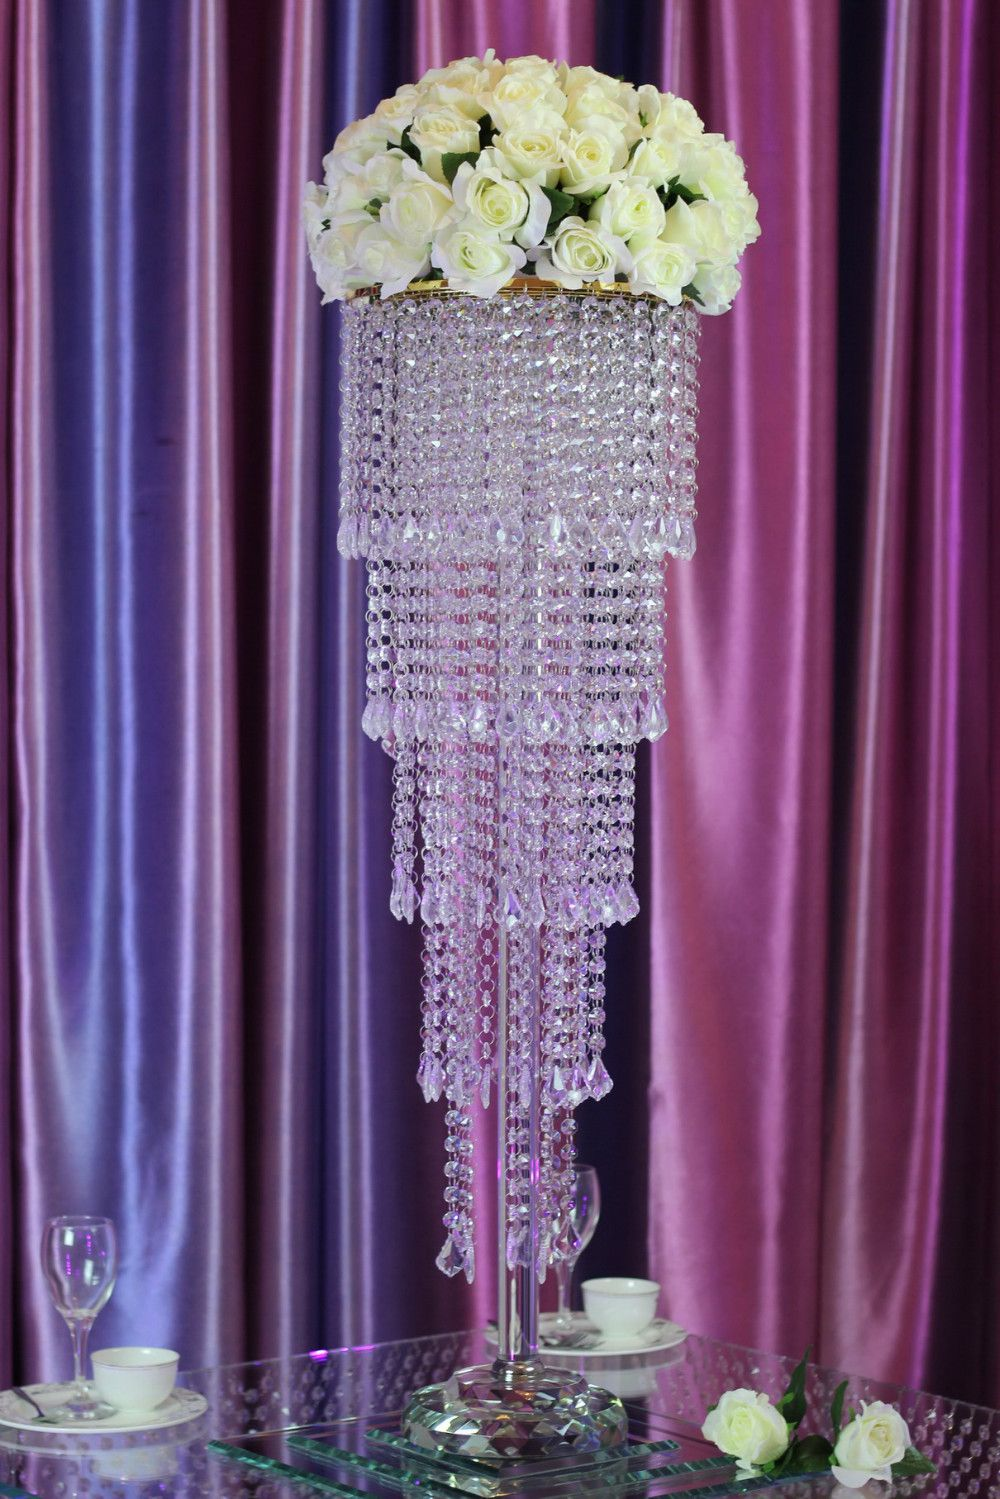 Wholesale crystal centerpiece for wedding table decoration wholesale crystal centerpiece for wedding table decoration affiliate junglespirit Choice Image